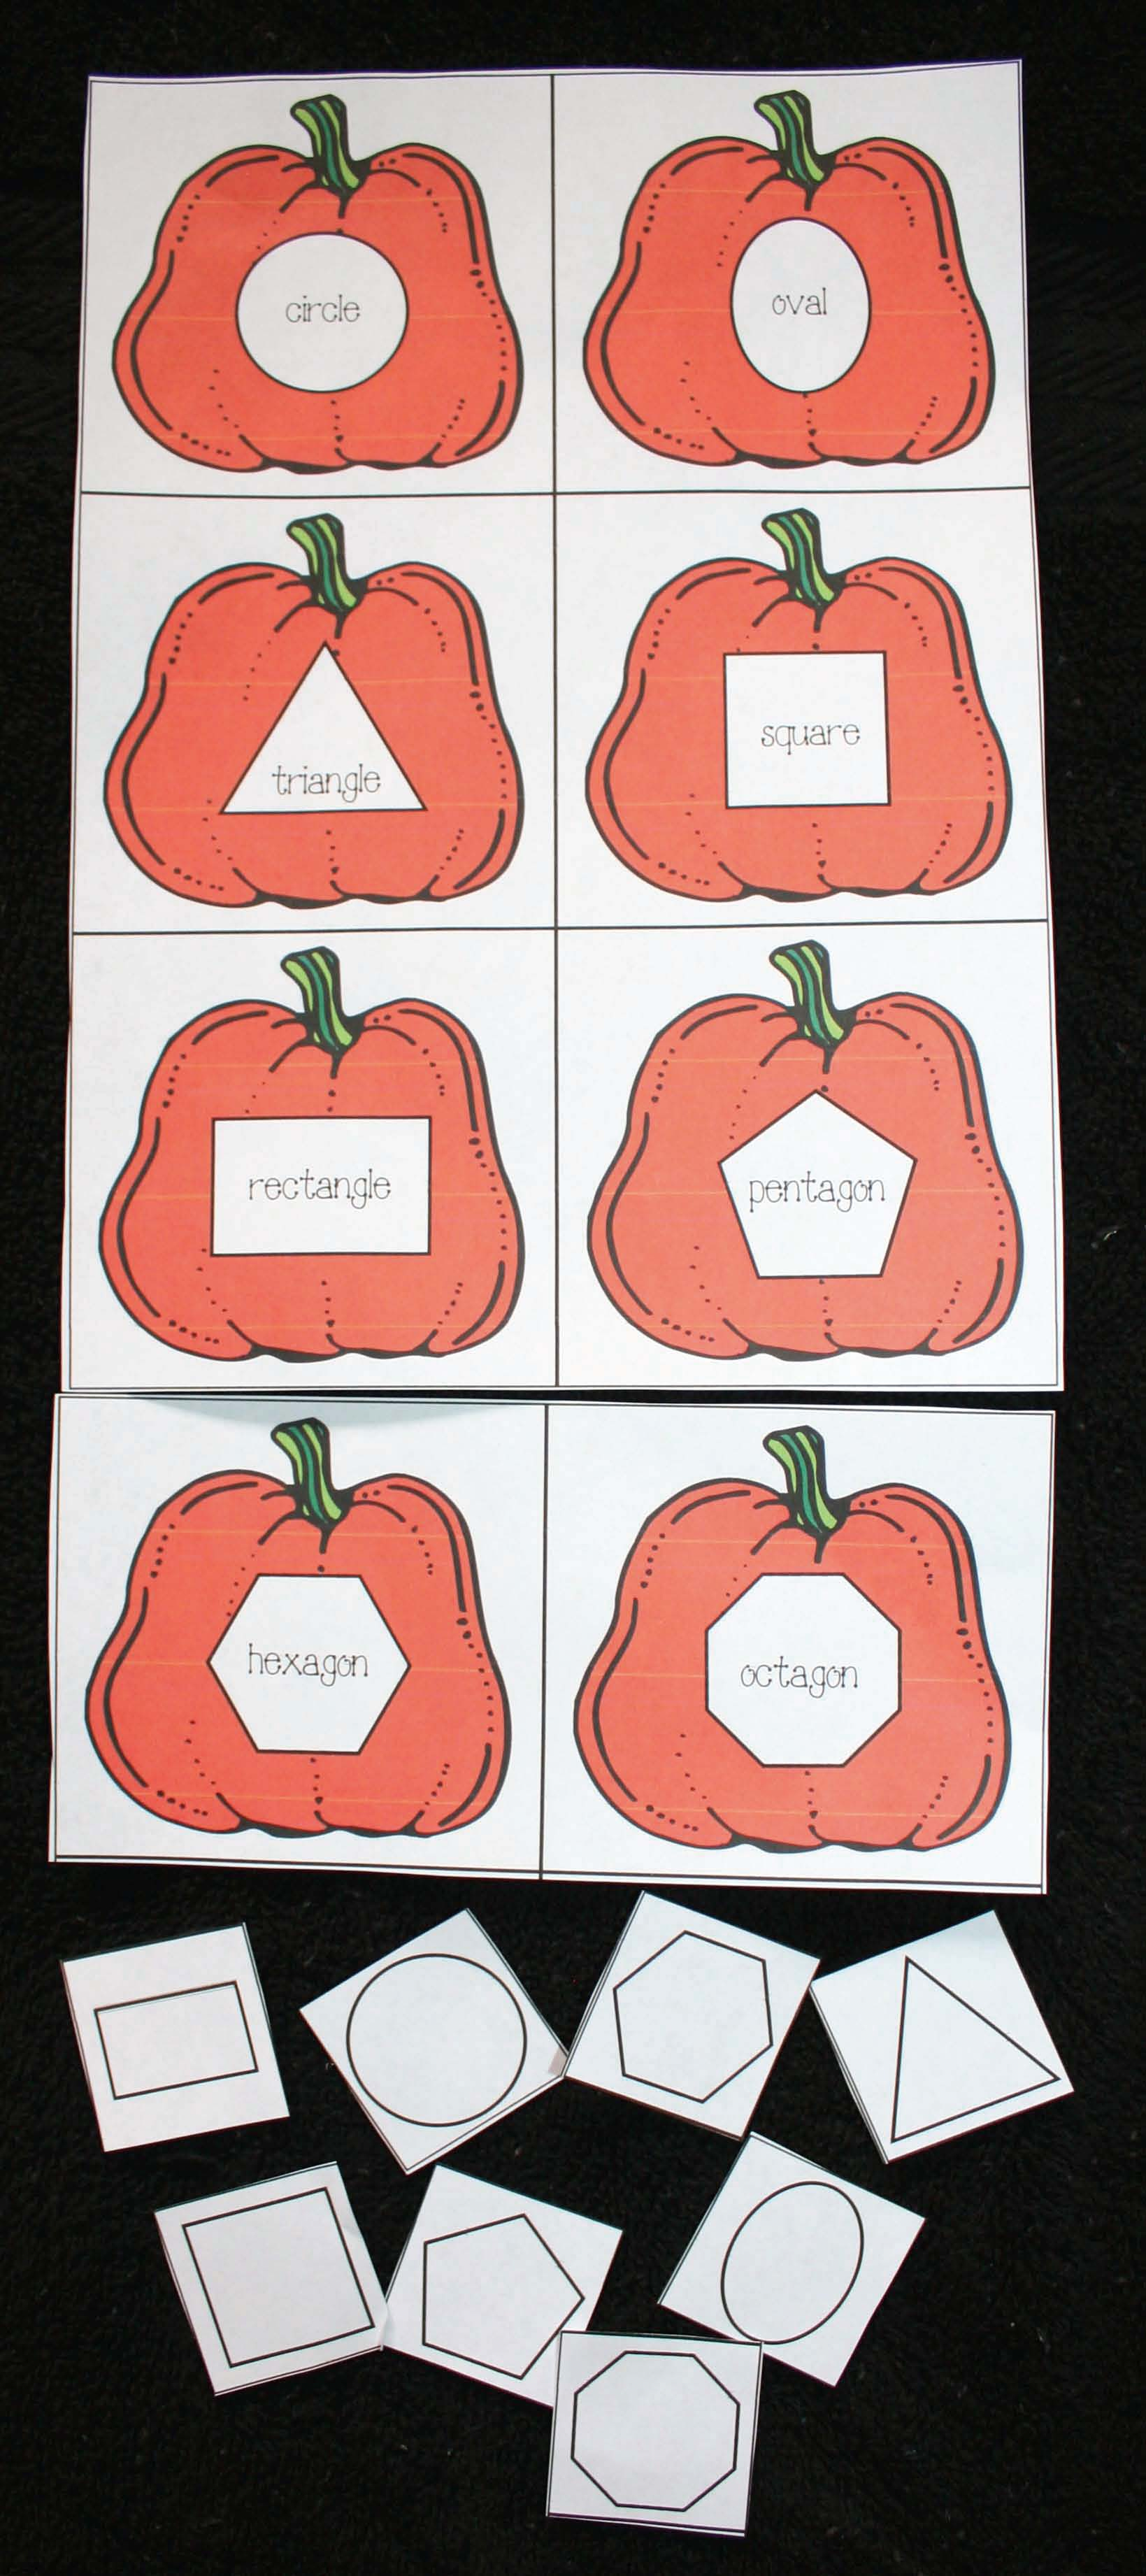 pumpkin activities, pumpkin lessons, pumpkin centers, pumpkin printables, free pumpkin printables, common core pumpkins, pumpkin counting cards, pumpkin templates, shape activities, Daily 5 for October, daily 5 word work for october, number word cards, pumpkin games,